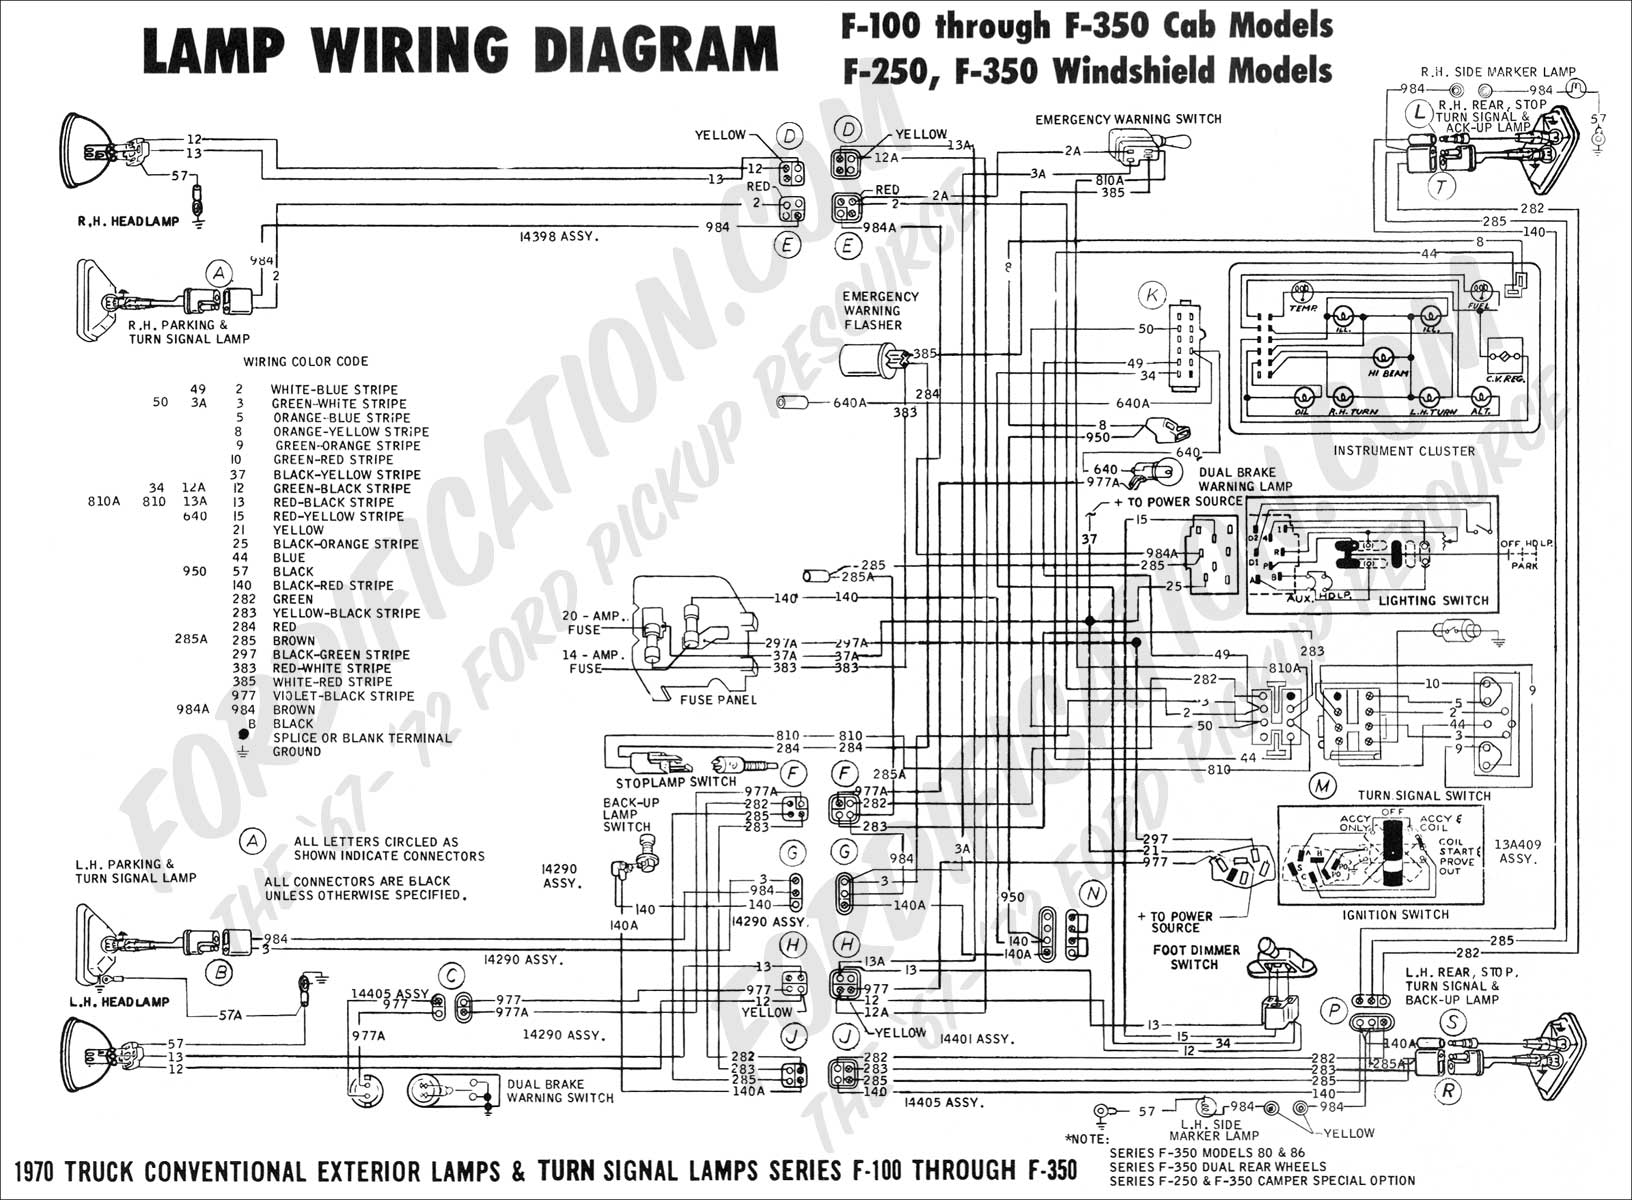 wiring diagram_70ext lights01 ford truck technical drawings and schematics section h wiring 1996 ford f250 wiring diagram at readyjetset.co